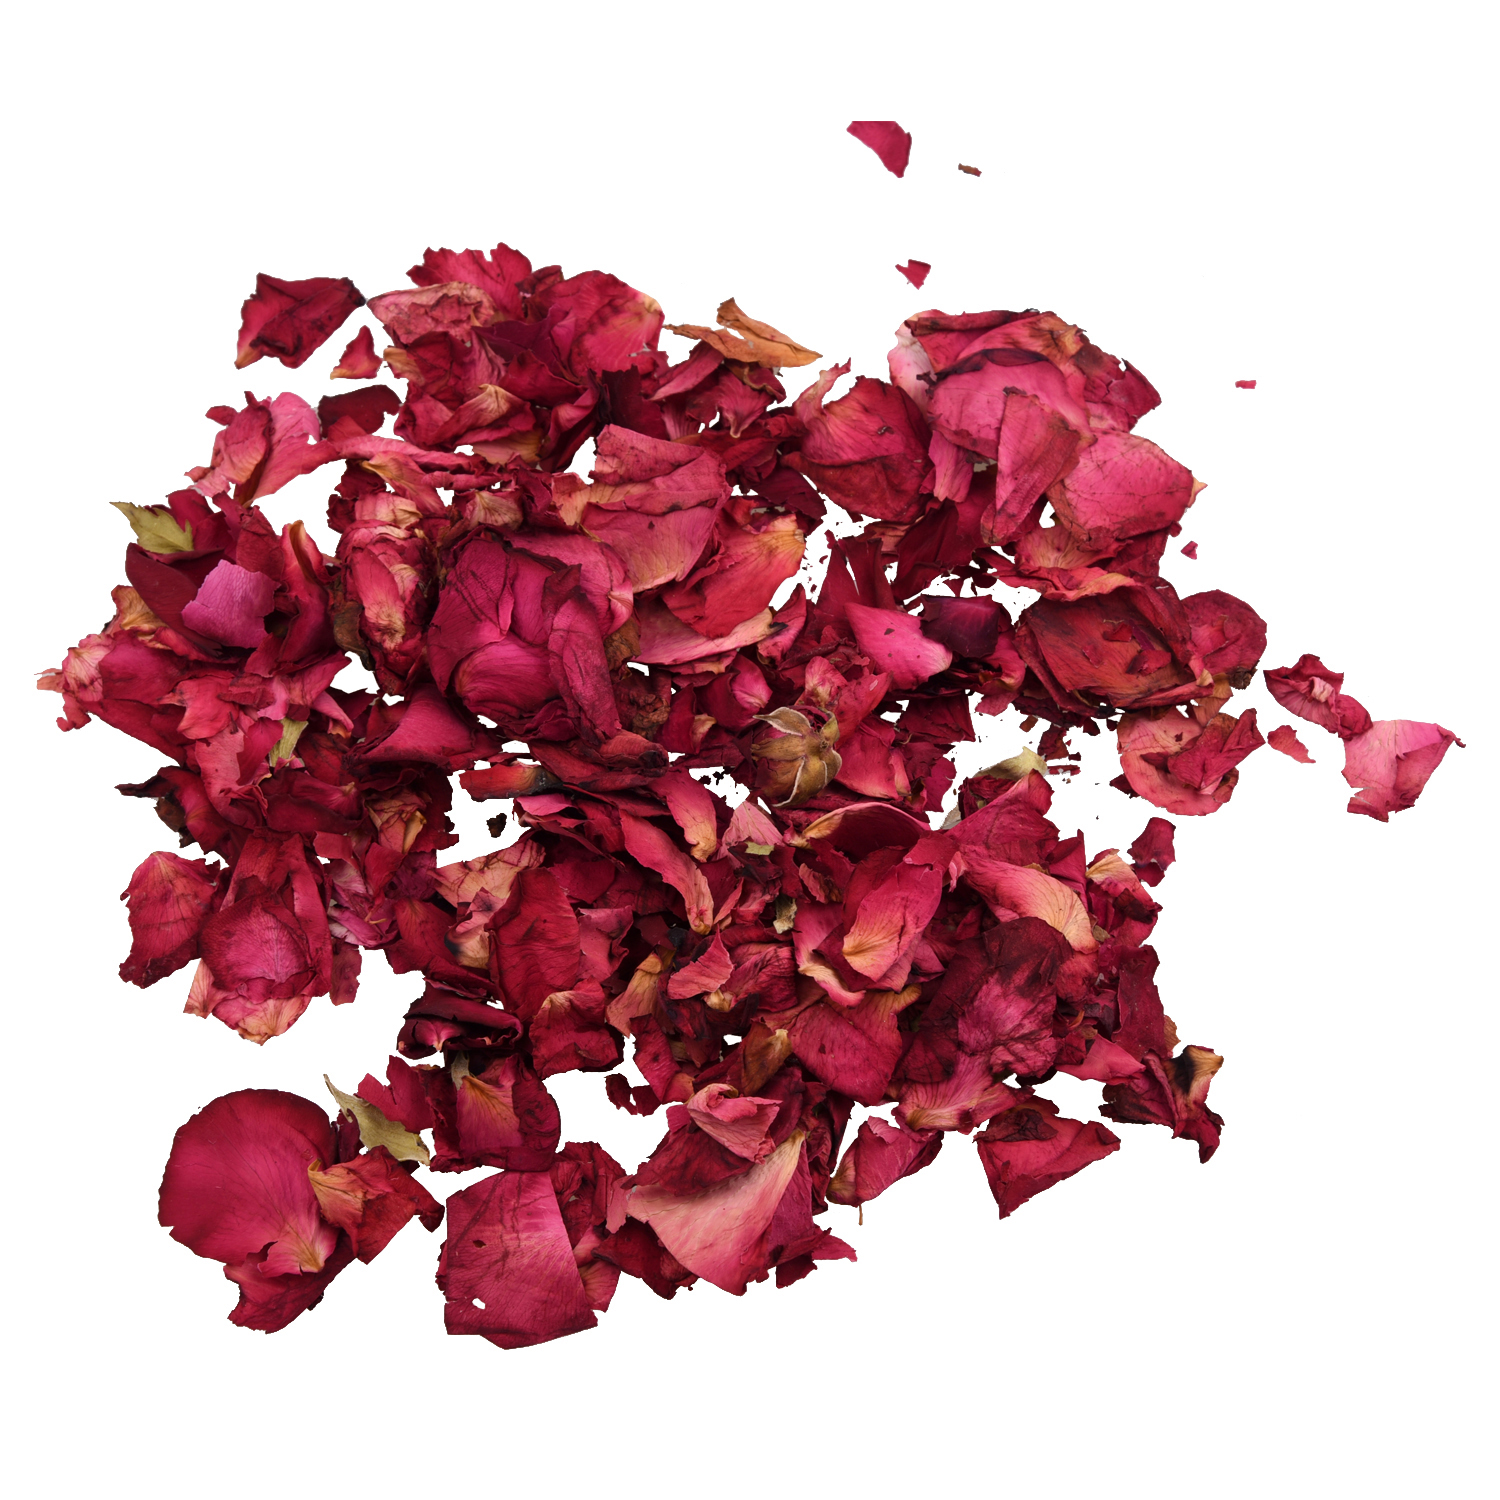 1 Bag Of Dried Rose Petals Flowers Natural Wedding Table